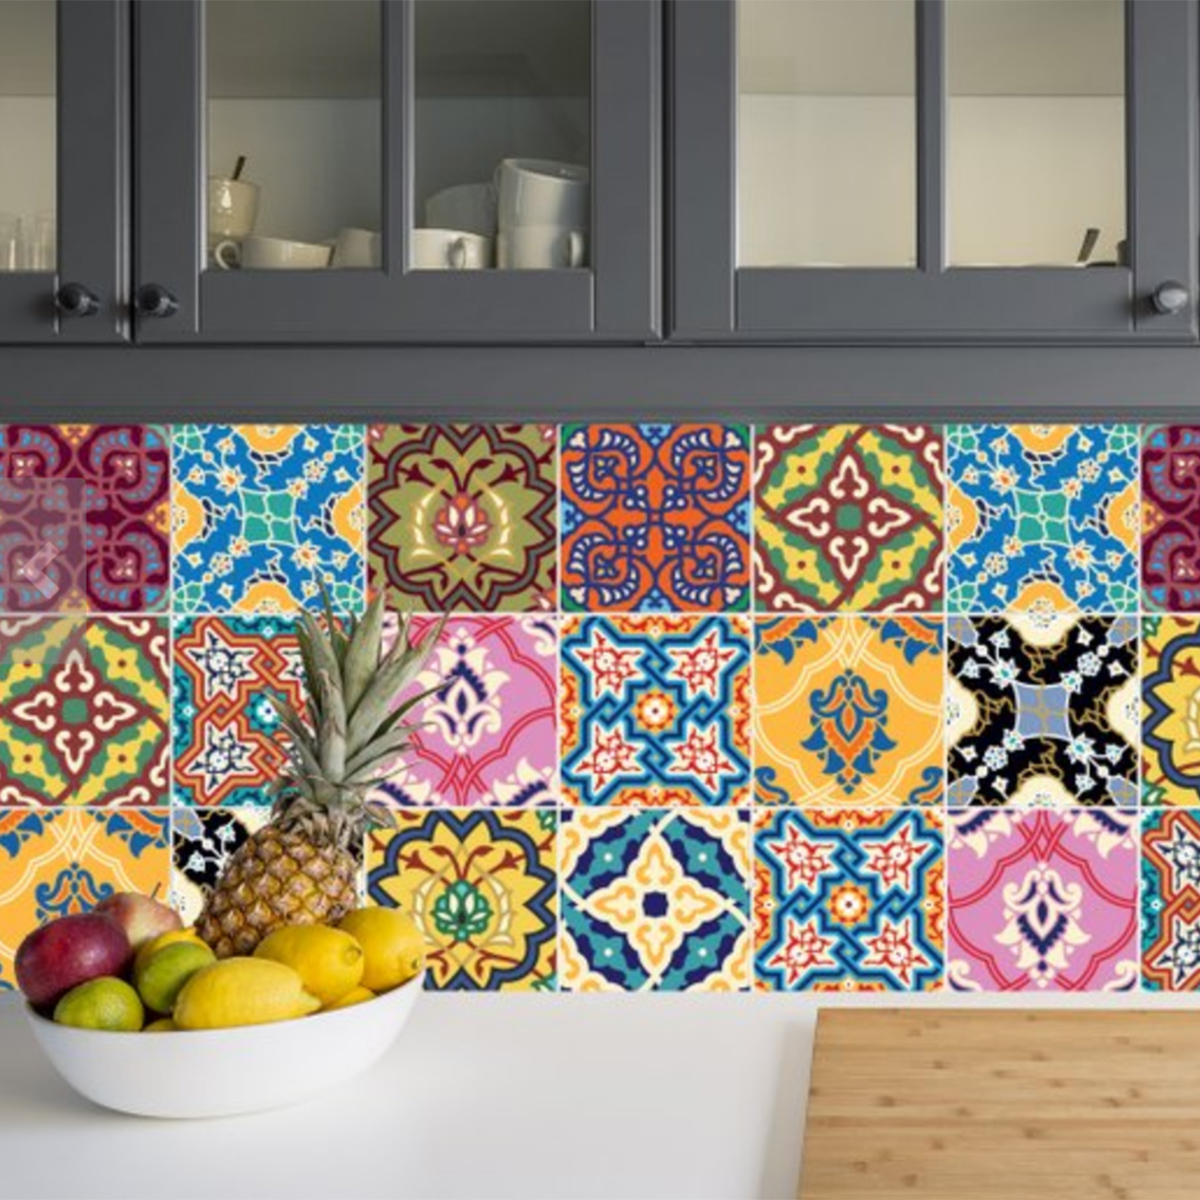 Interior Designers Sophie Robinson talks kitchen update patchwork tile stickers